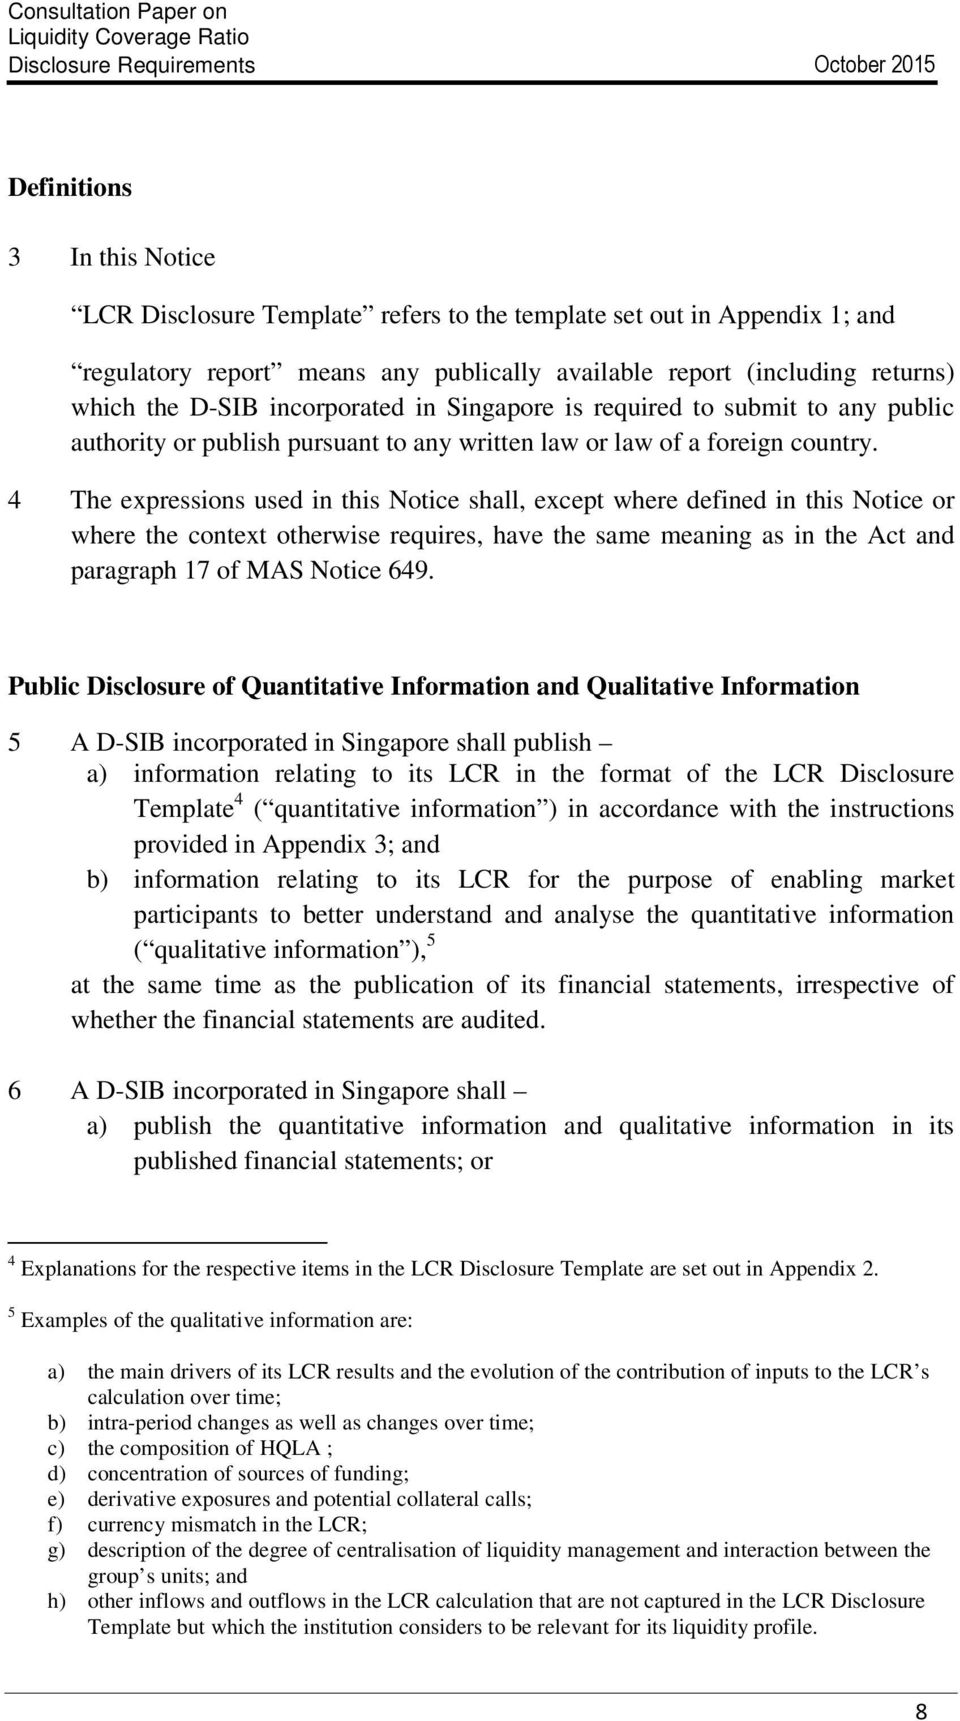 4 The expressions used in this Notice shall, except where defined in this Notice or where the context otherwise requires, have the same meaning as in the Act and paragraph 17 of MAS Notice 649.